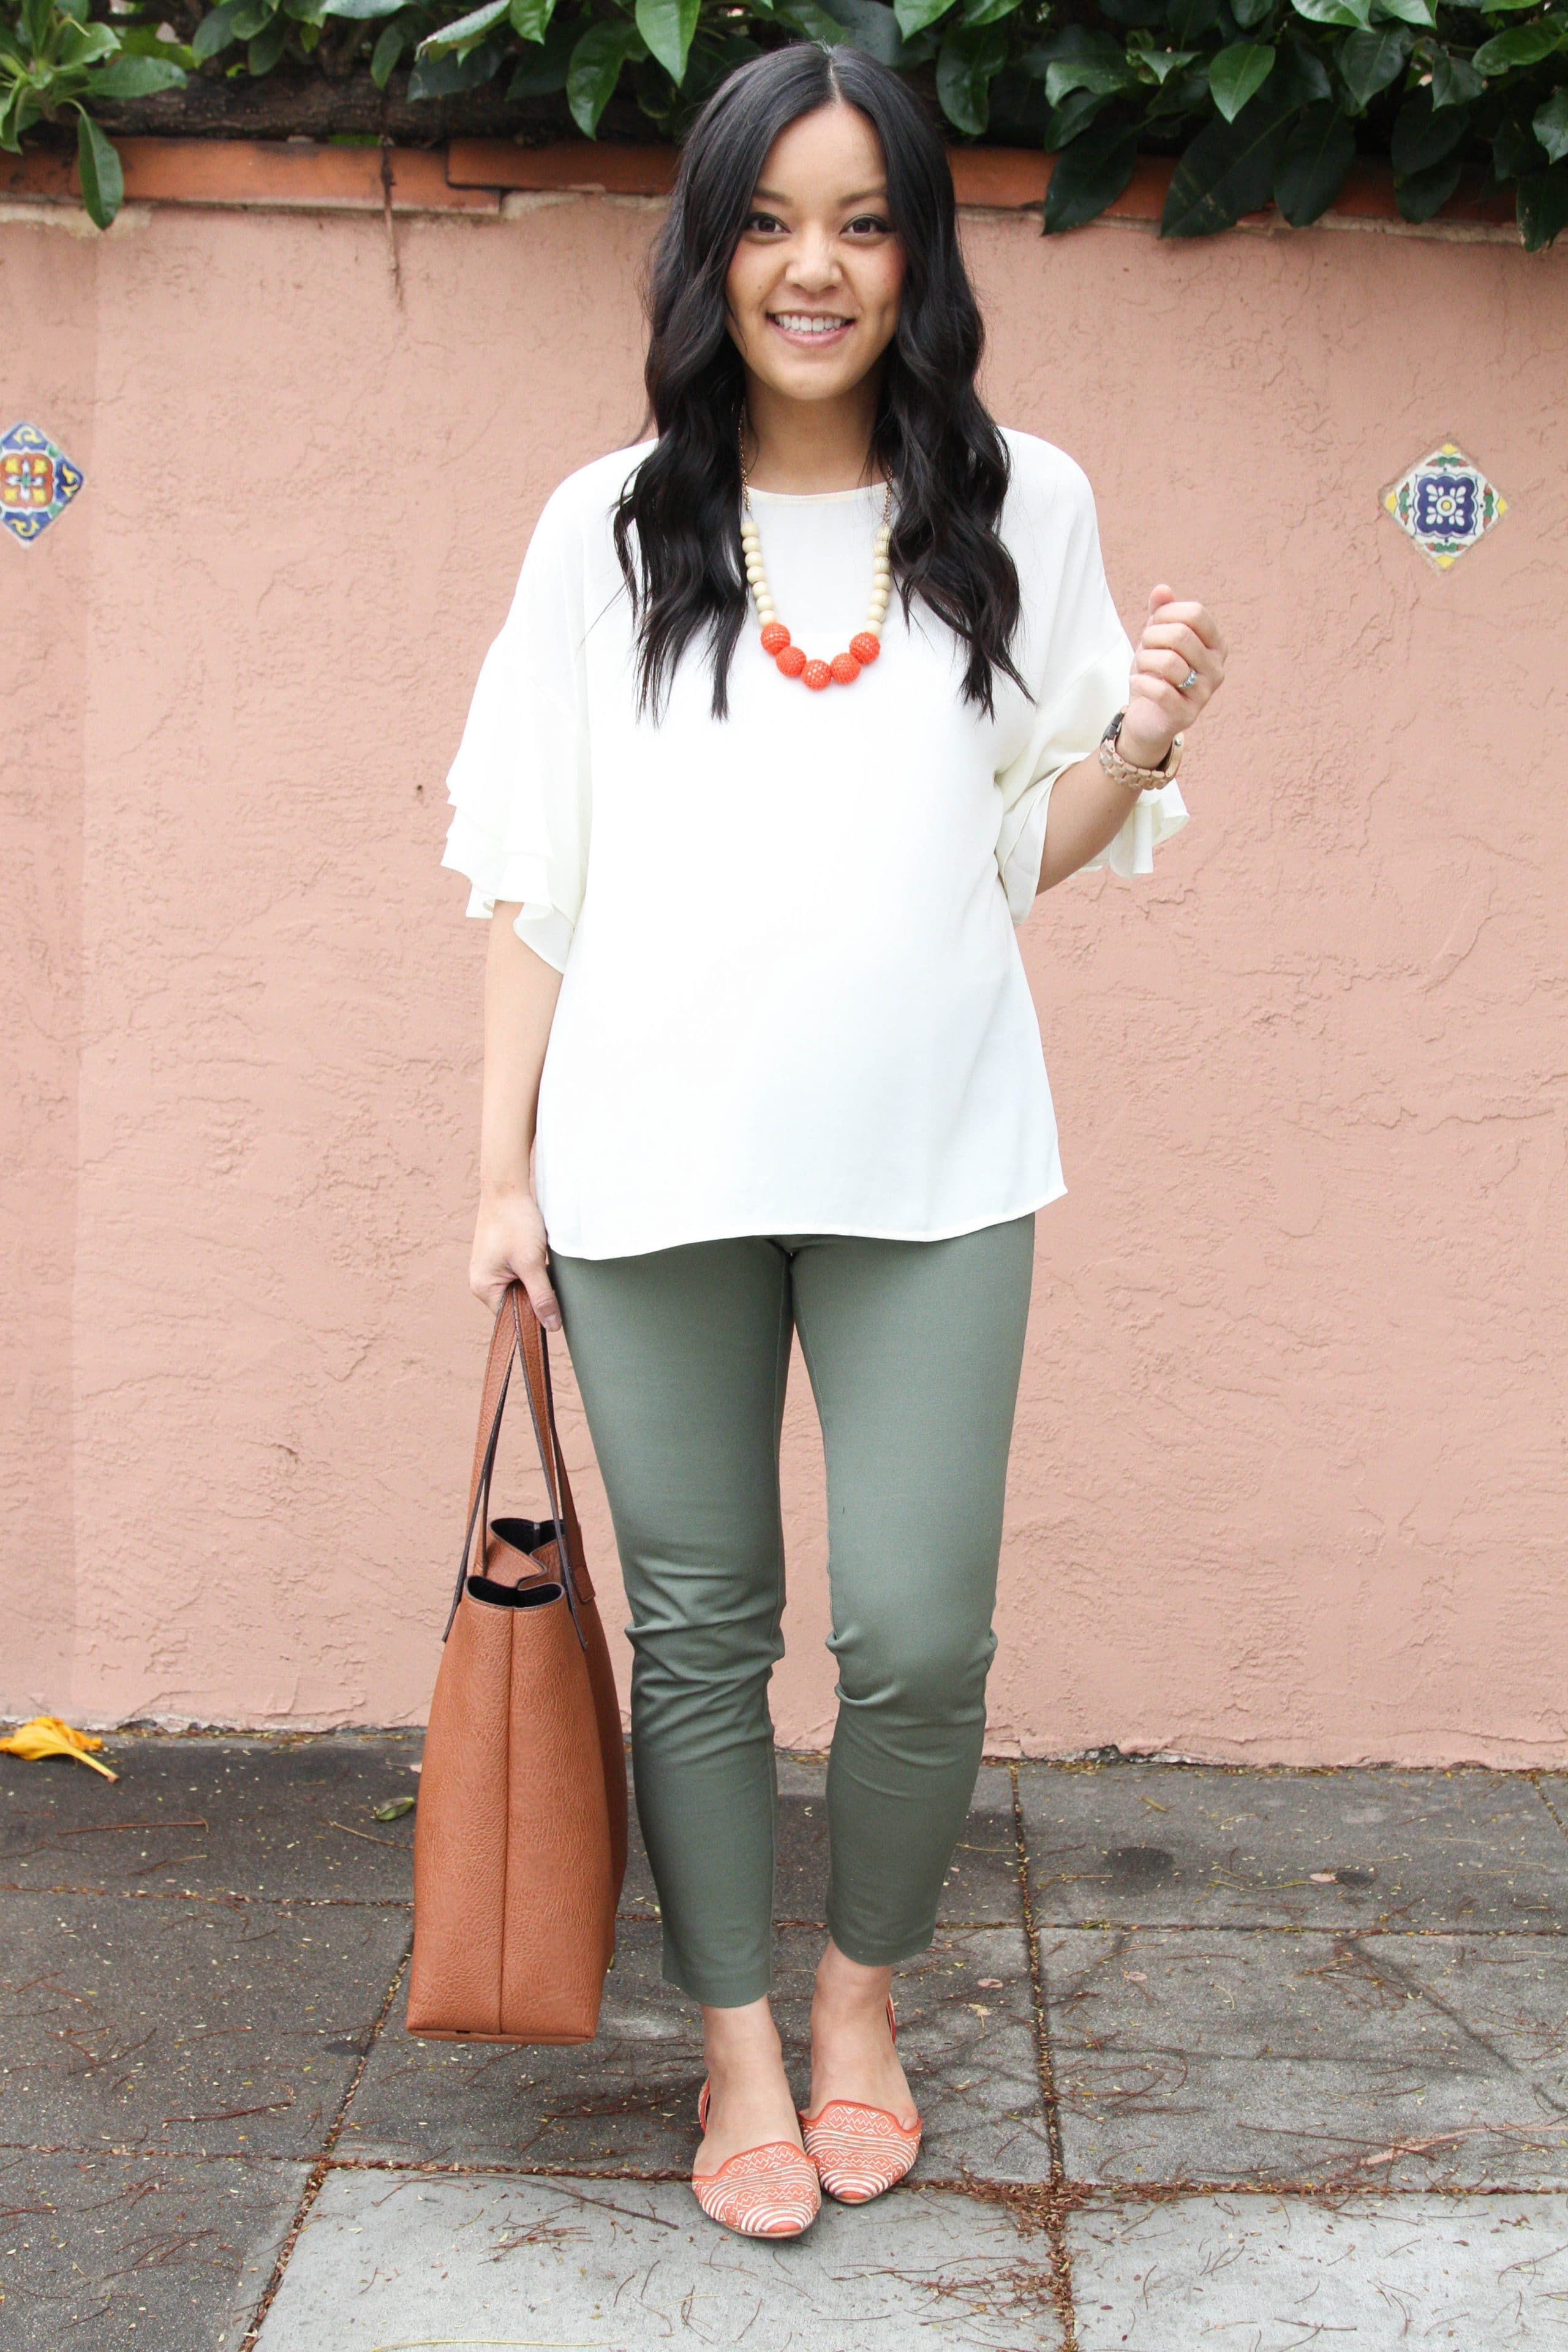 Green Chinos + Cognac Tote + White Bell Sleeves Top + Statements